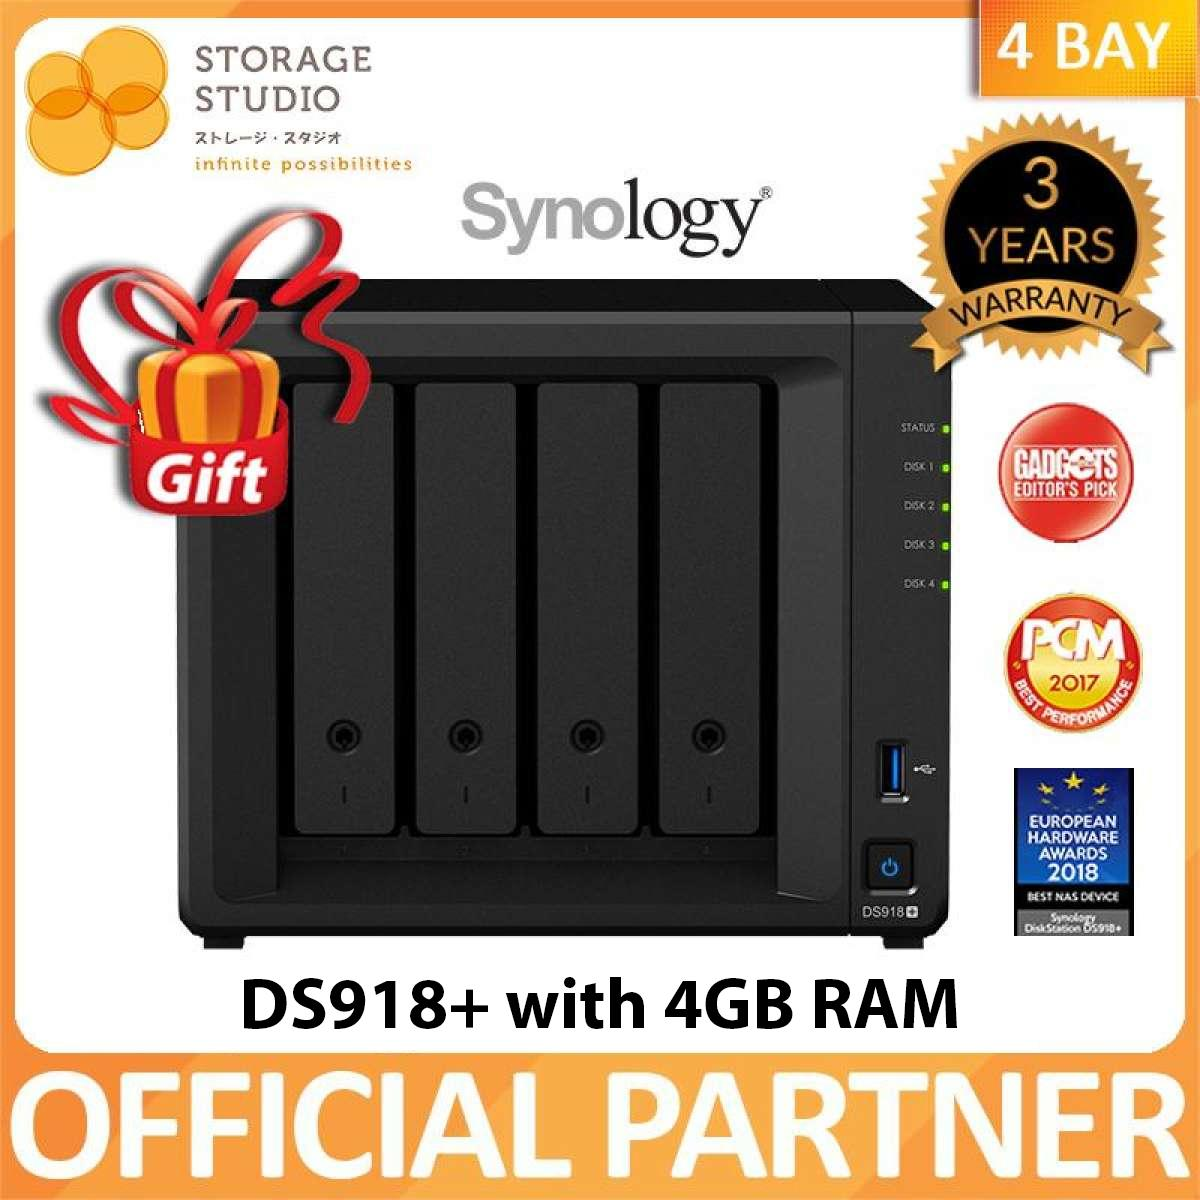 Synology 4 Bay Nas Ds918+ With 4gb Memory. Local Warranty 3 Years. Award Winning Product. ** Synology Official Partner ** By Storage Studio (s) Pte Ltd.